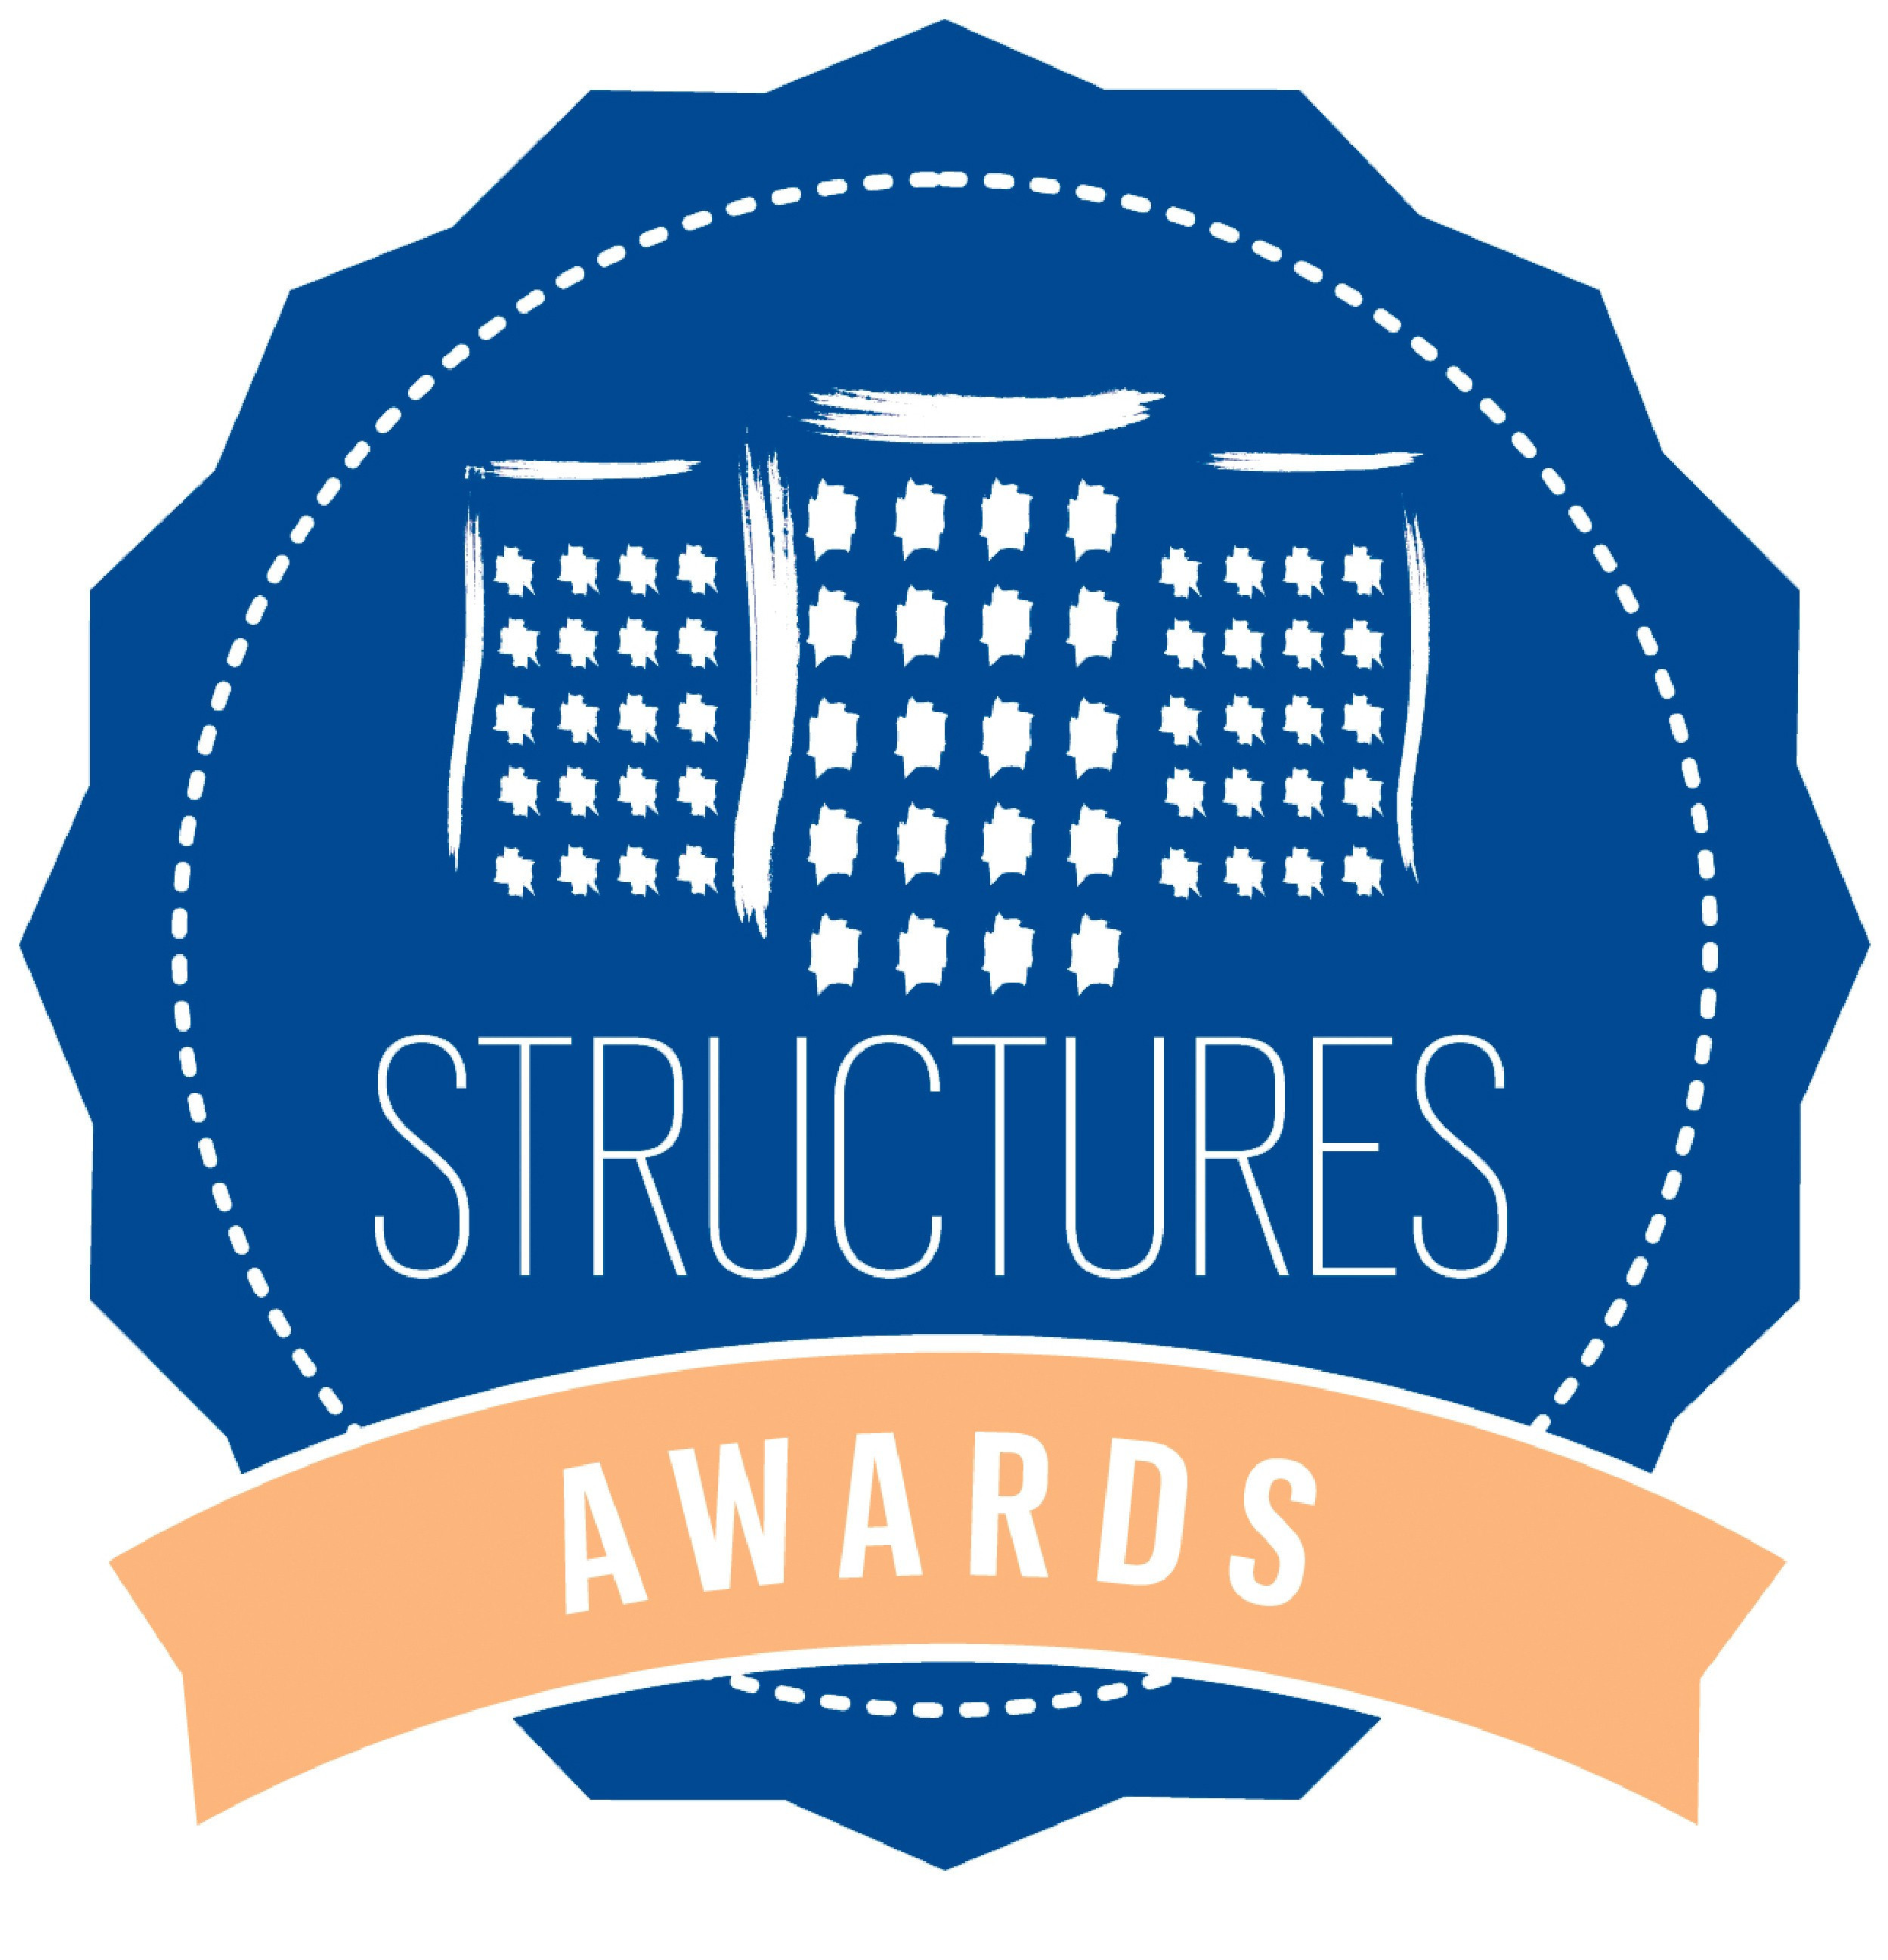 Award: 2015 Silicon Valley Business Journal Structures Awards: Best Green Project: 415 N. Mathilda